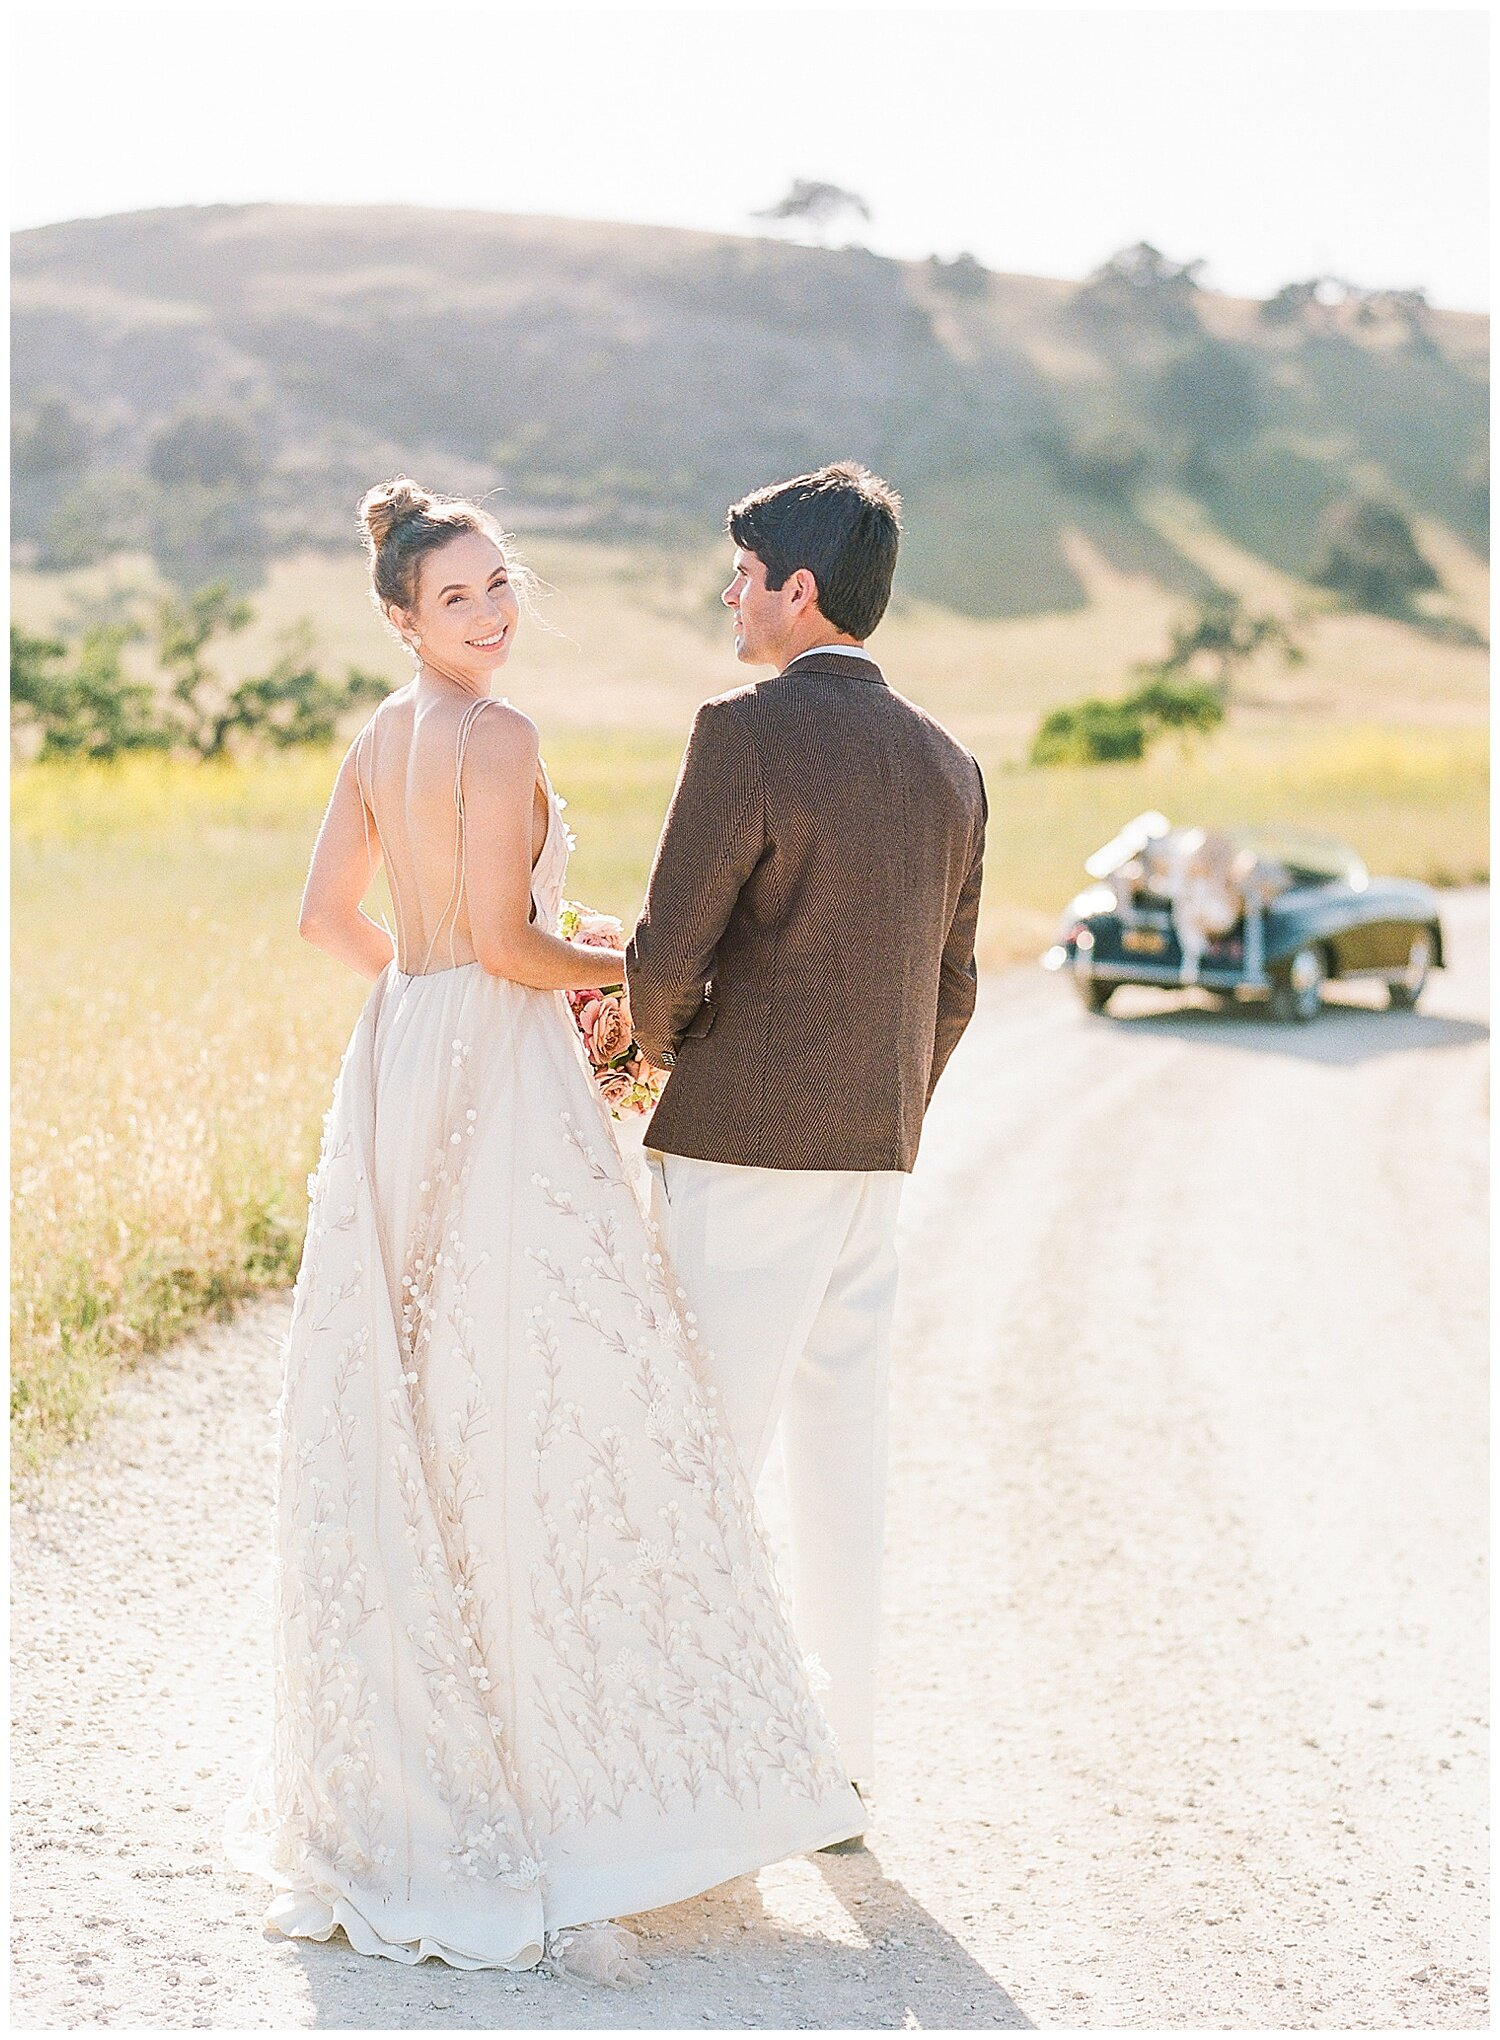 Janine_Licare_Photography_San_Francisco_Kestrel_Park_Santa_Ynez_Sunstone_Villa_Winer_Wedding_Photographer_Meadowood_Napa_Valley_Sonoma_0076.jpg